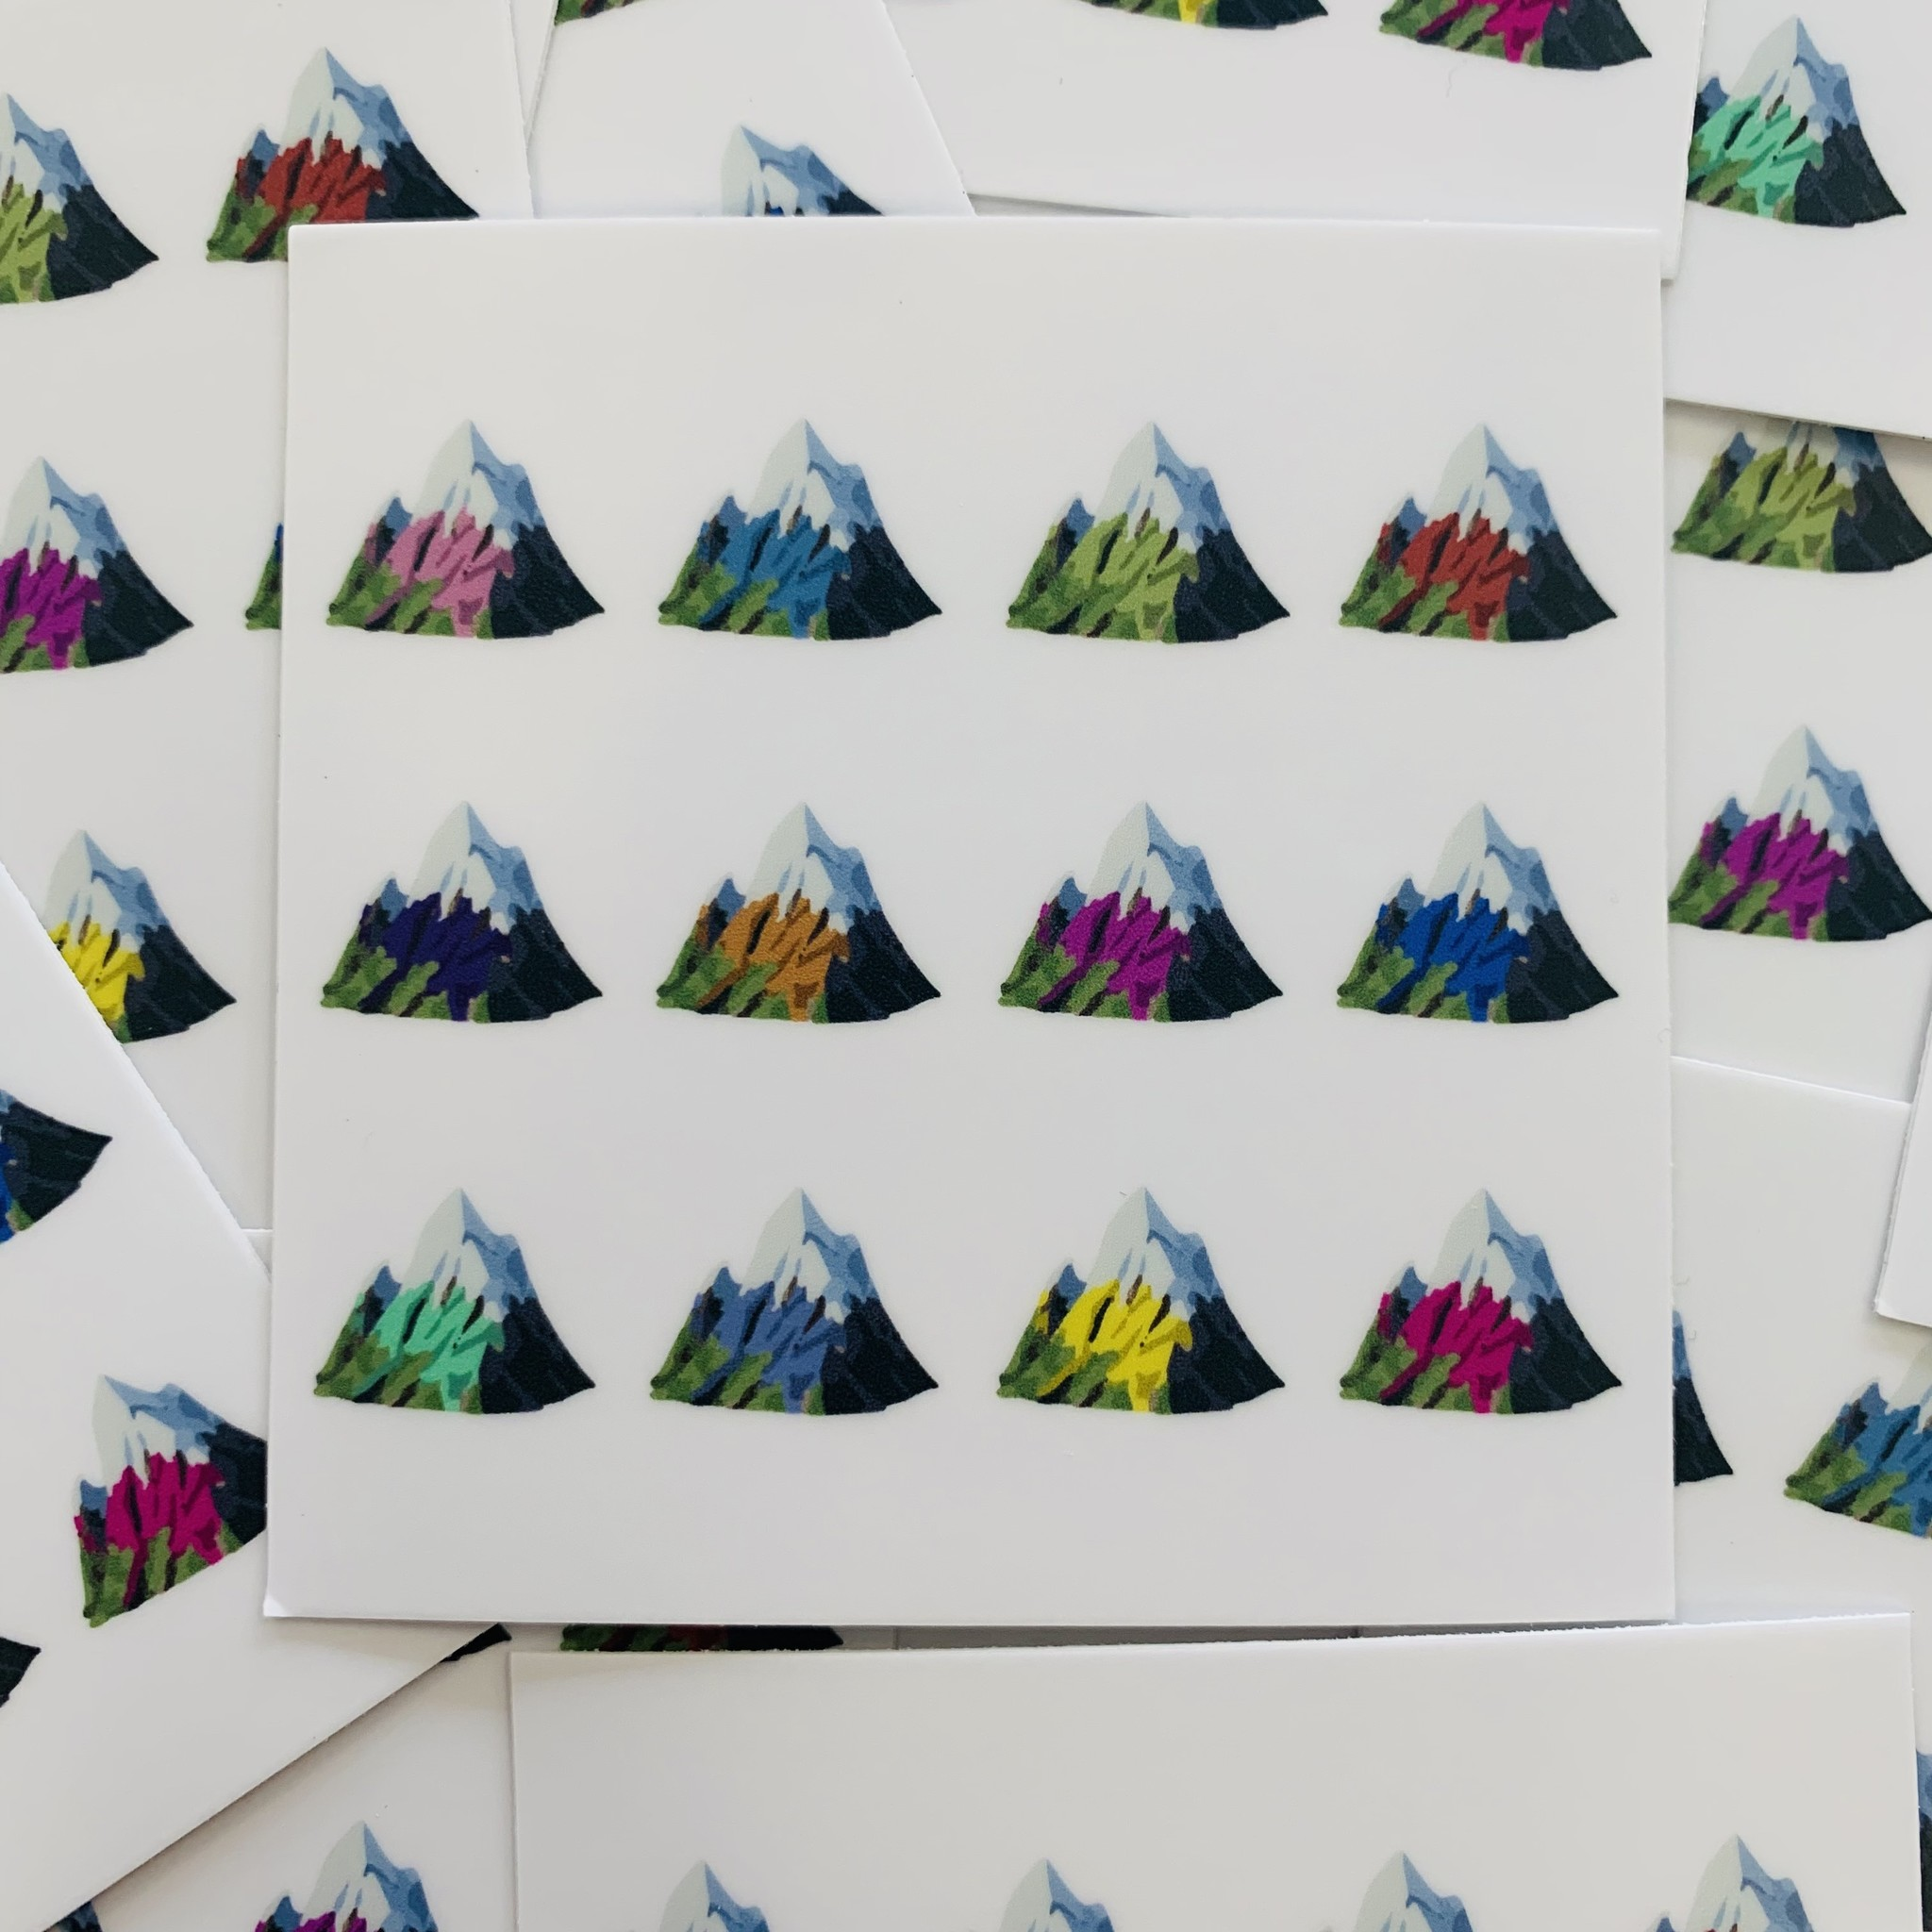 Trading Co. Certified Mountain Town Sticker